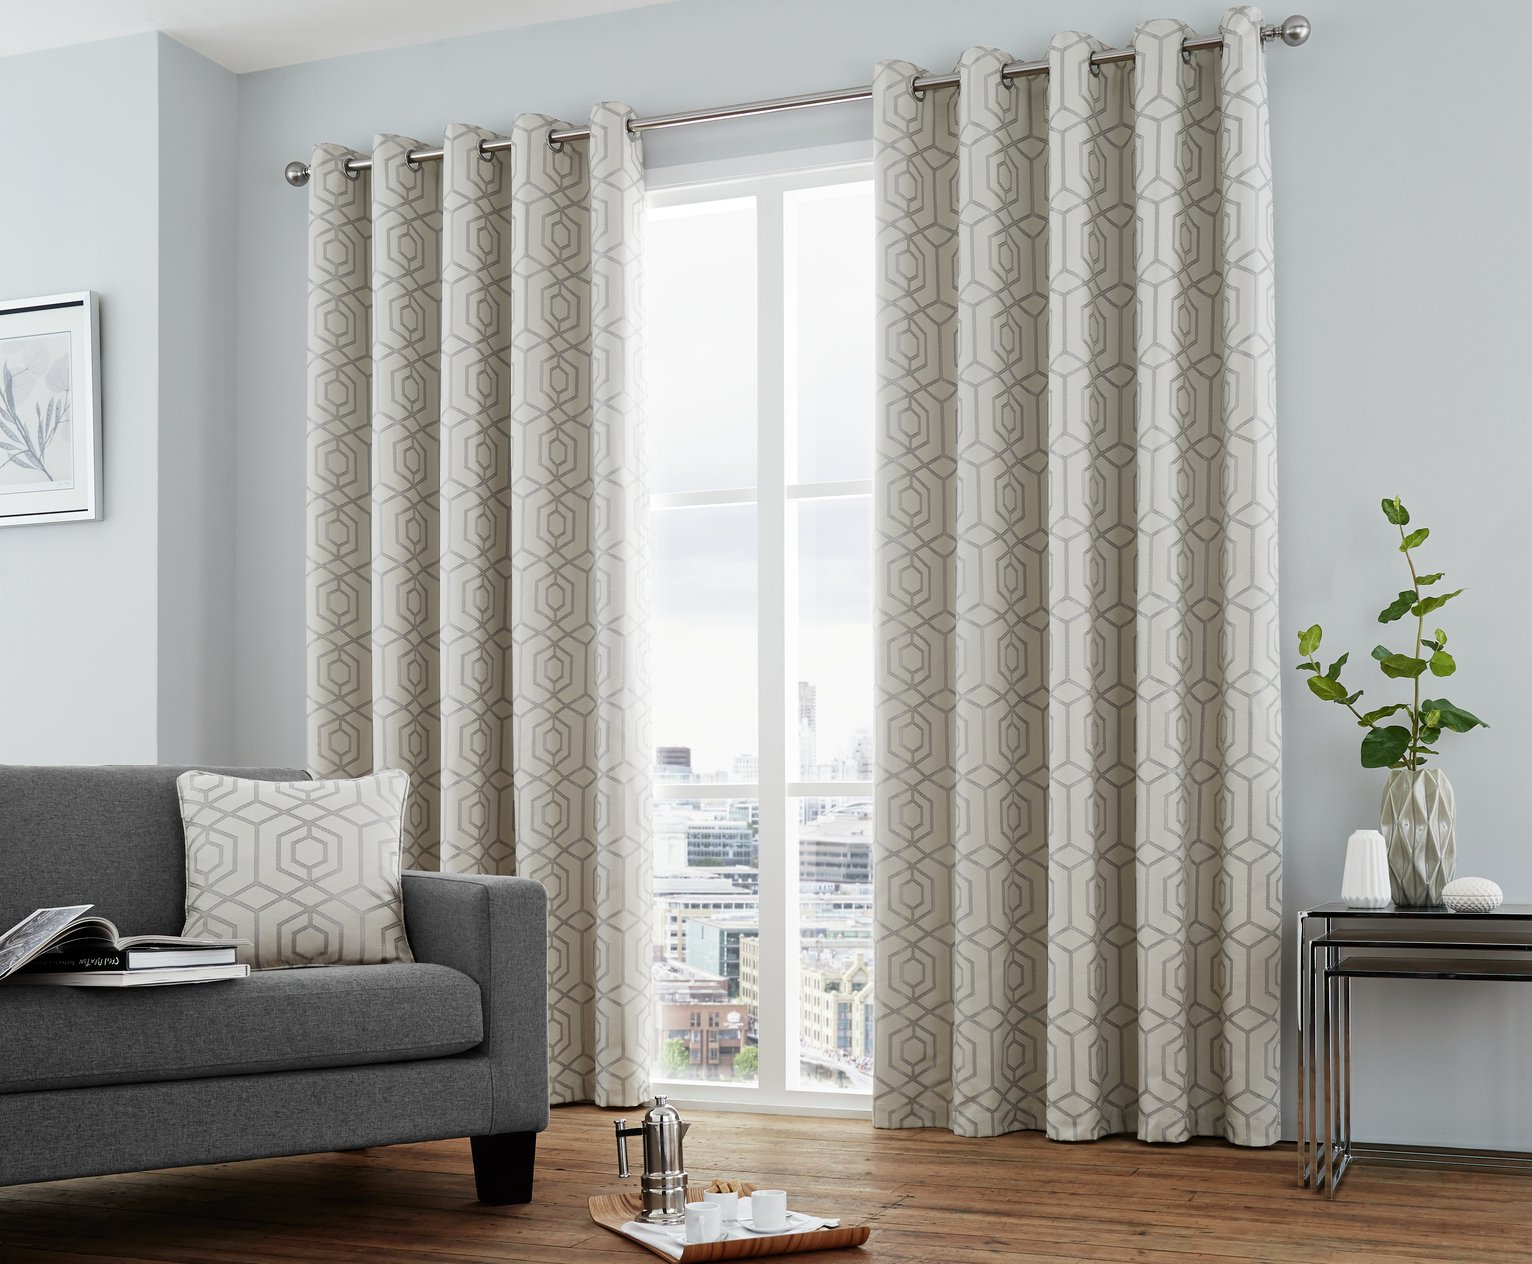 Image of Curtina Camberwell Eyelet Curtains - 168x137cm - Silver